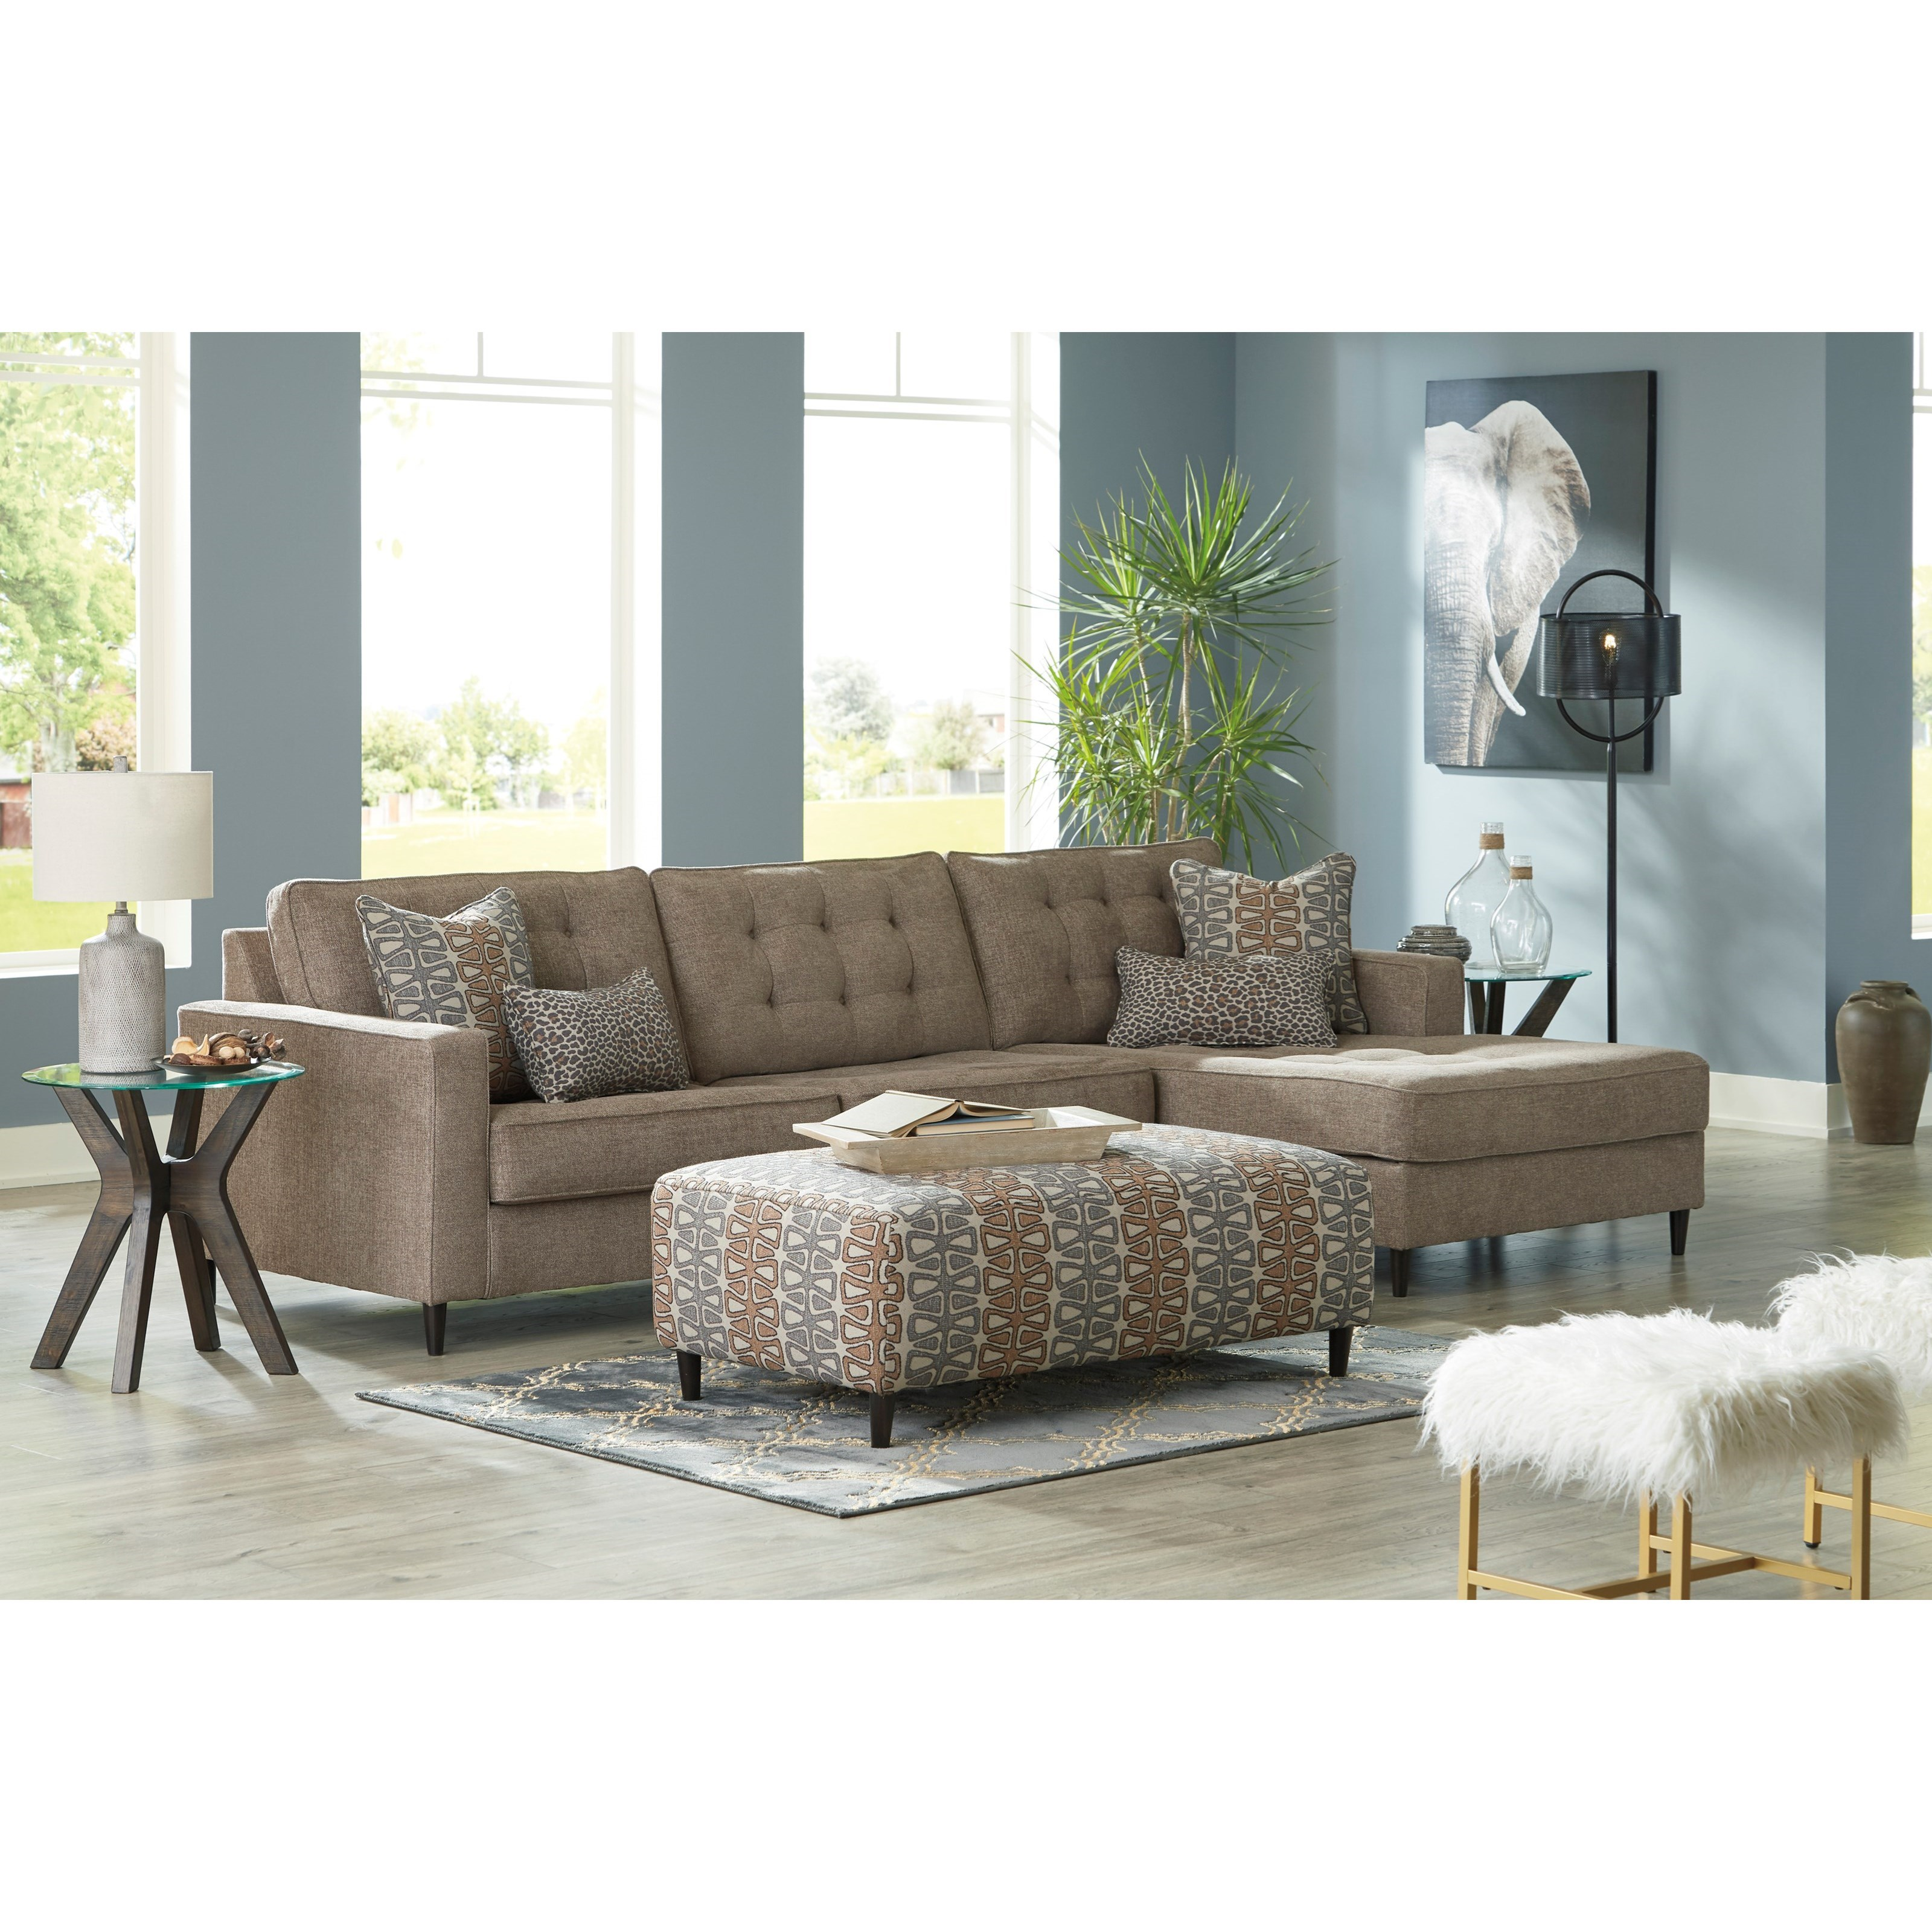 Flintshire Living Room Group by Ashley (Signature Design) at Johnny Janosik